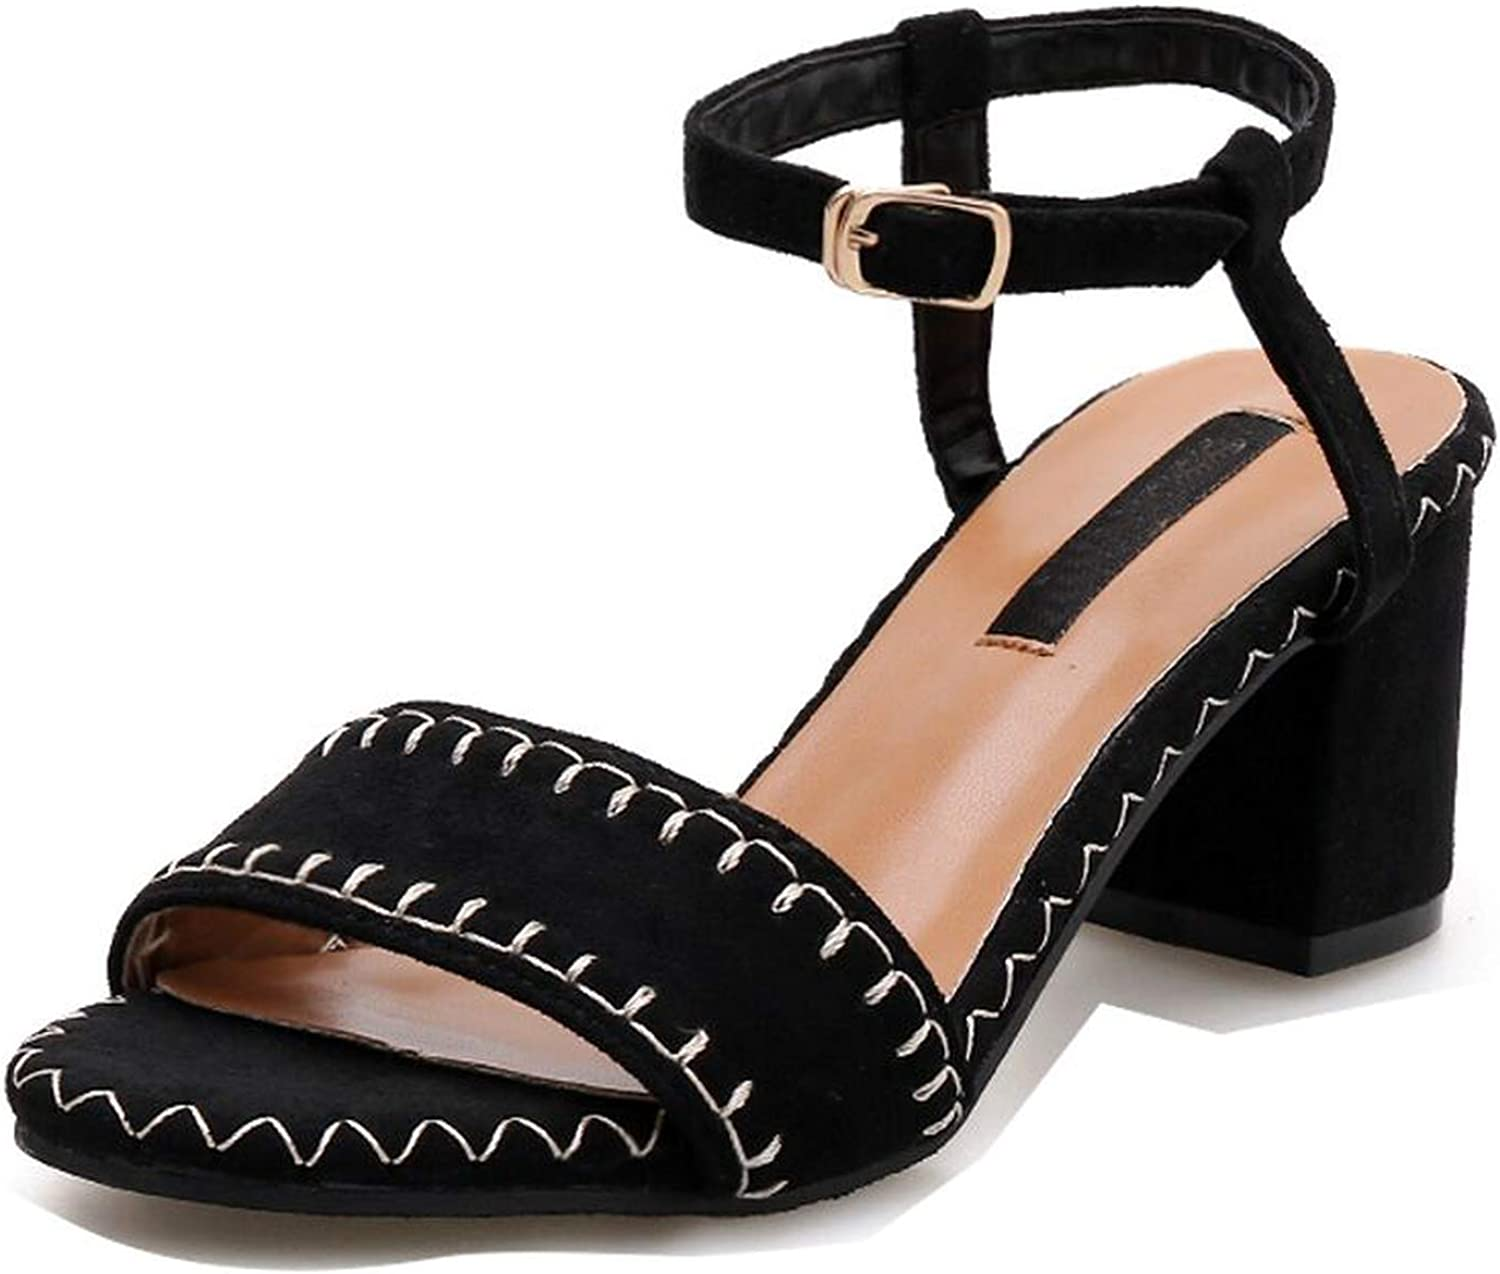 Flock Sexy Sandals Women Round Toe Square High Heels shoes Women Shallow Gladiator Sandals,Black,5